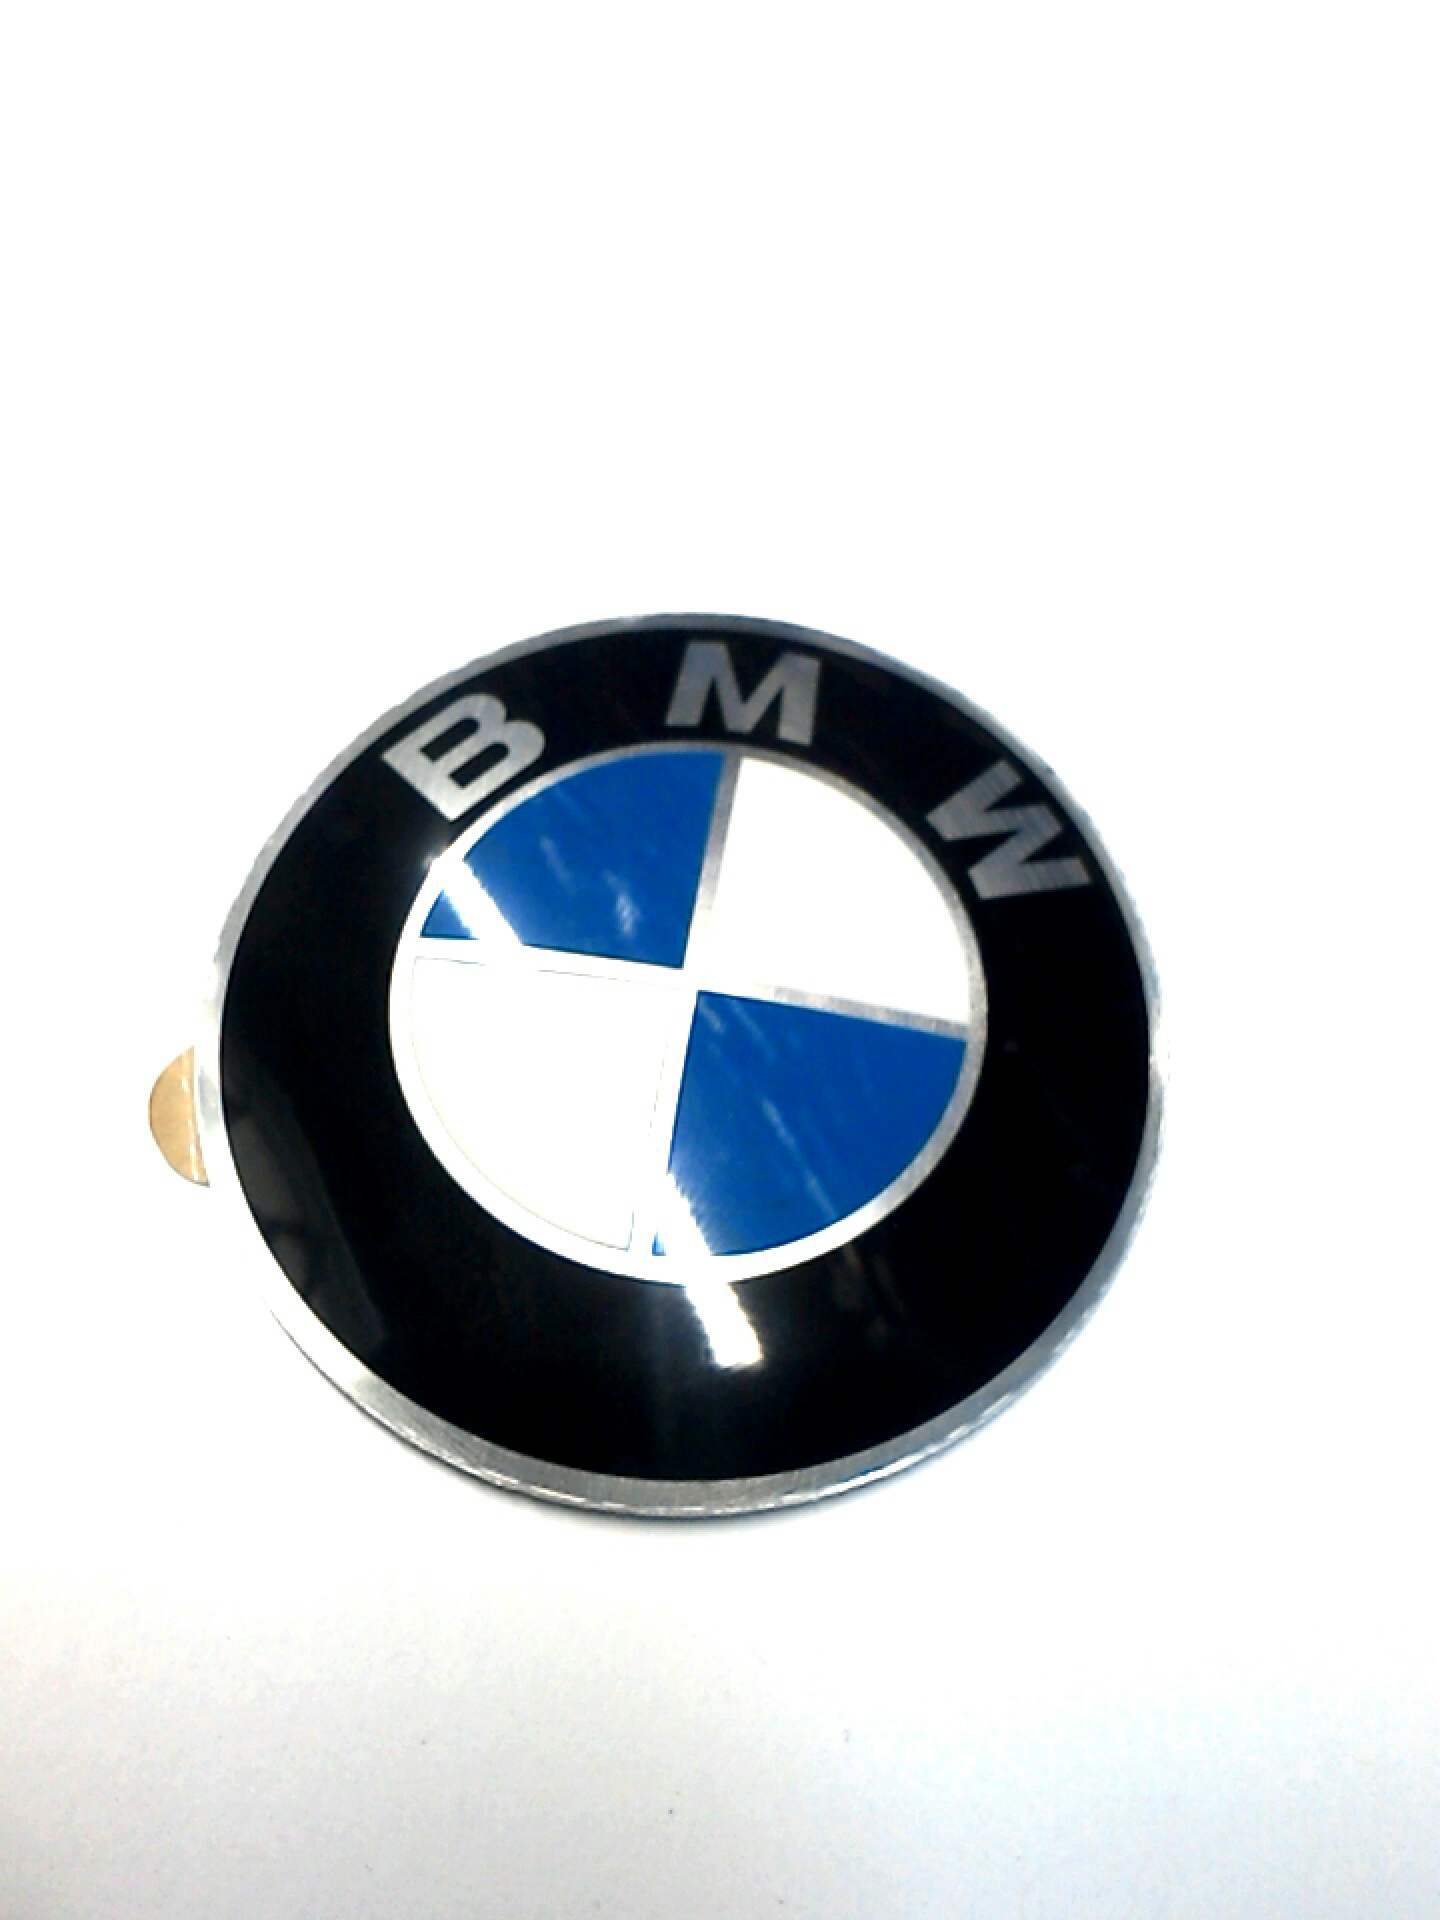 bmw 850ci bmw plaque with adhesive film d 64 5mm styl styling rim 36131181080 bmw. Black Bedroom Furniture Sets. Home Design Ideas